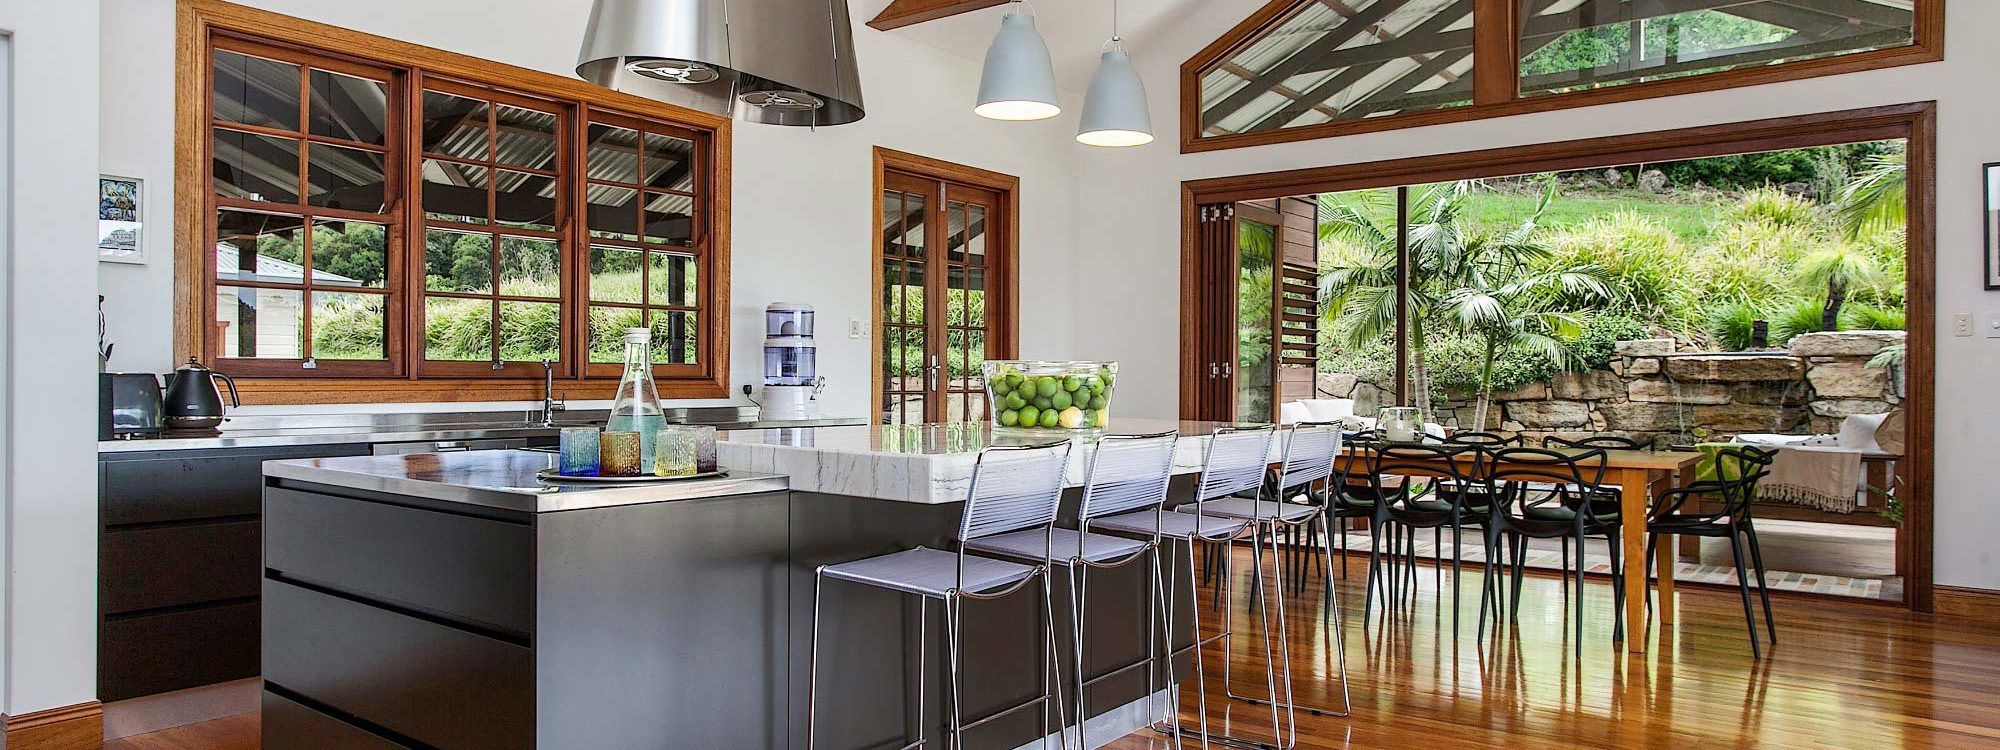 Callistemon View - Byron Bay Hinterland - Federal - kitchen and dining